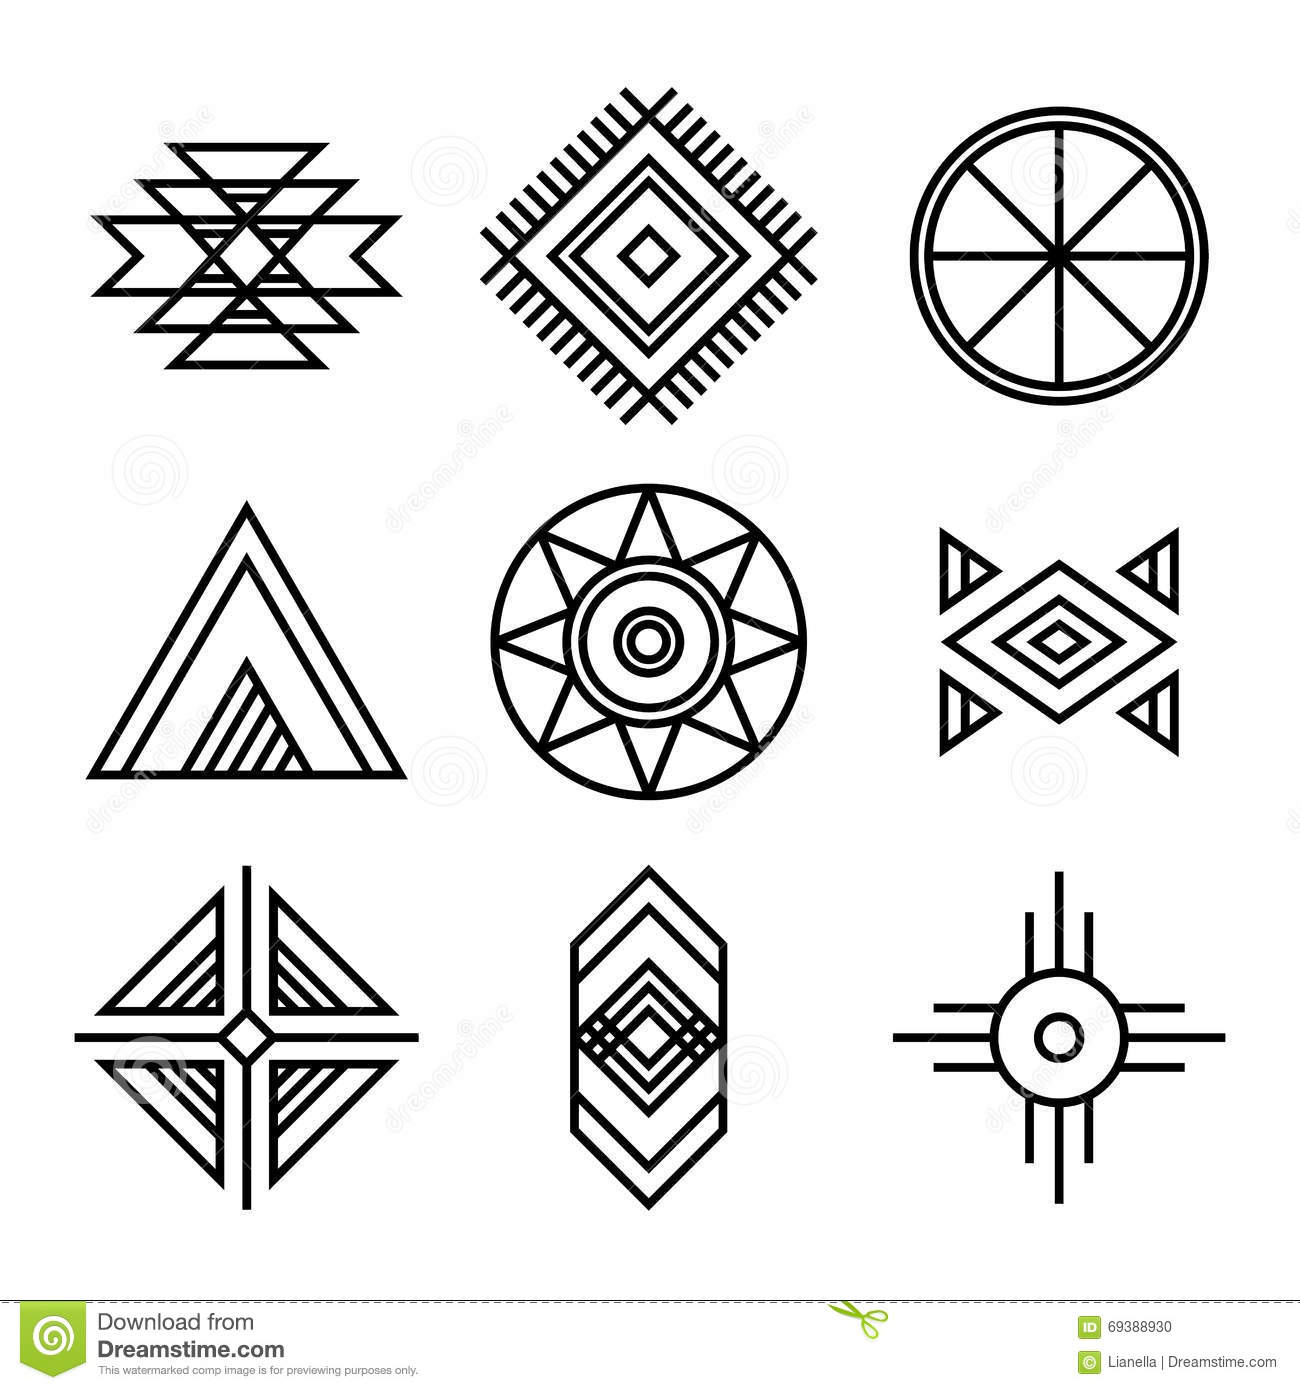 native american indians tribal symbols stock vector. Black Bedroom Furniture Sets. Home Design Ideas